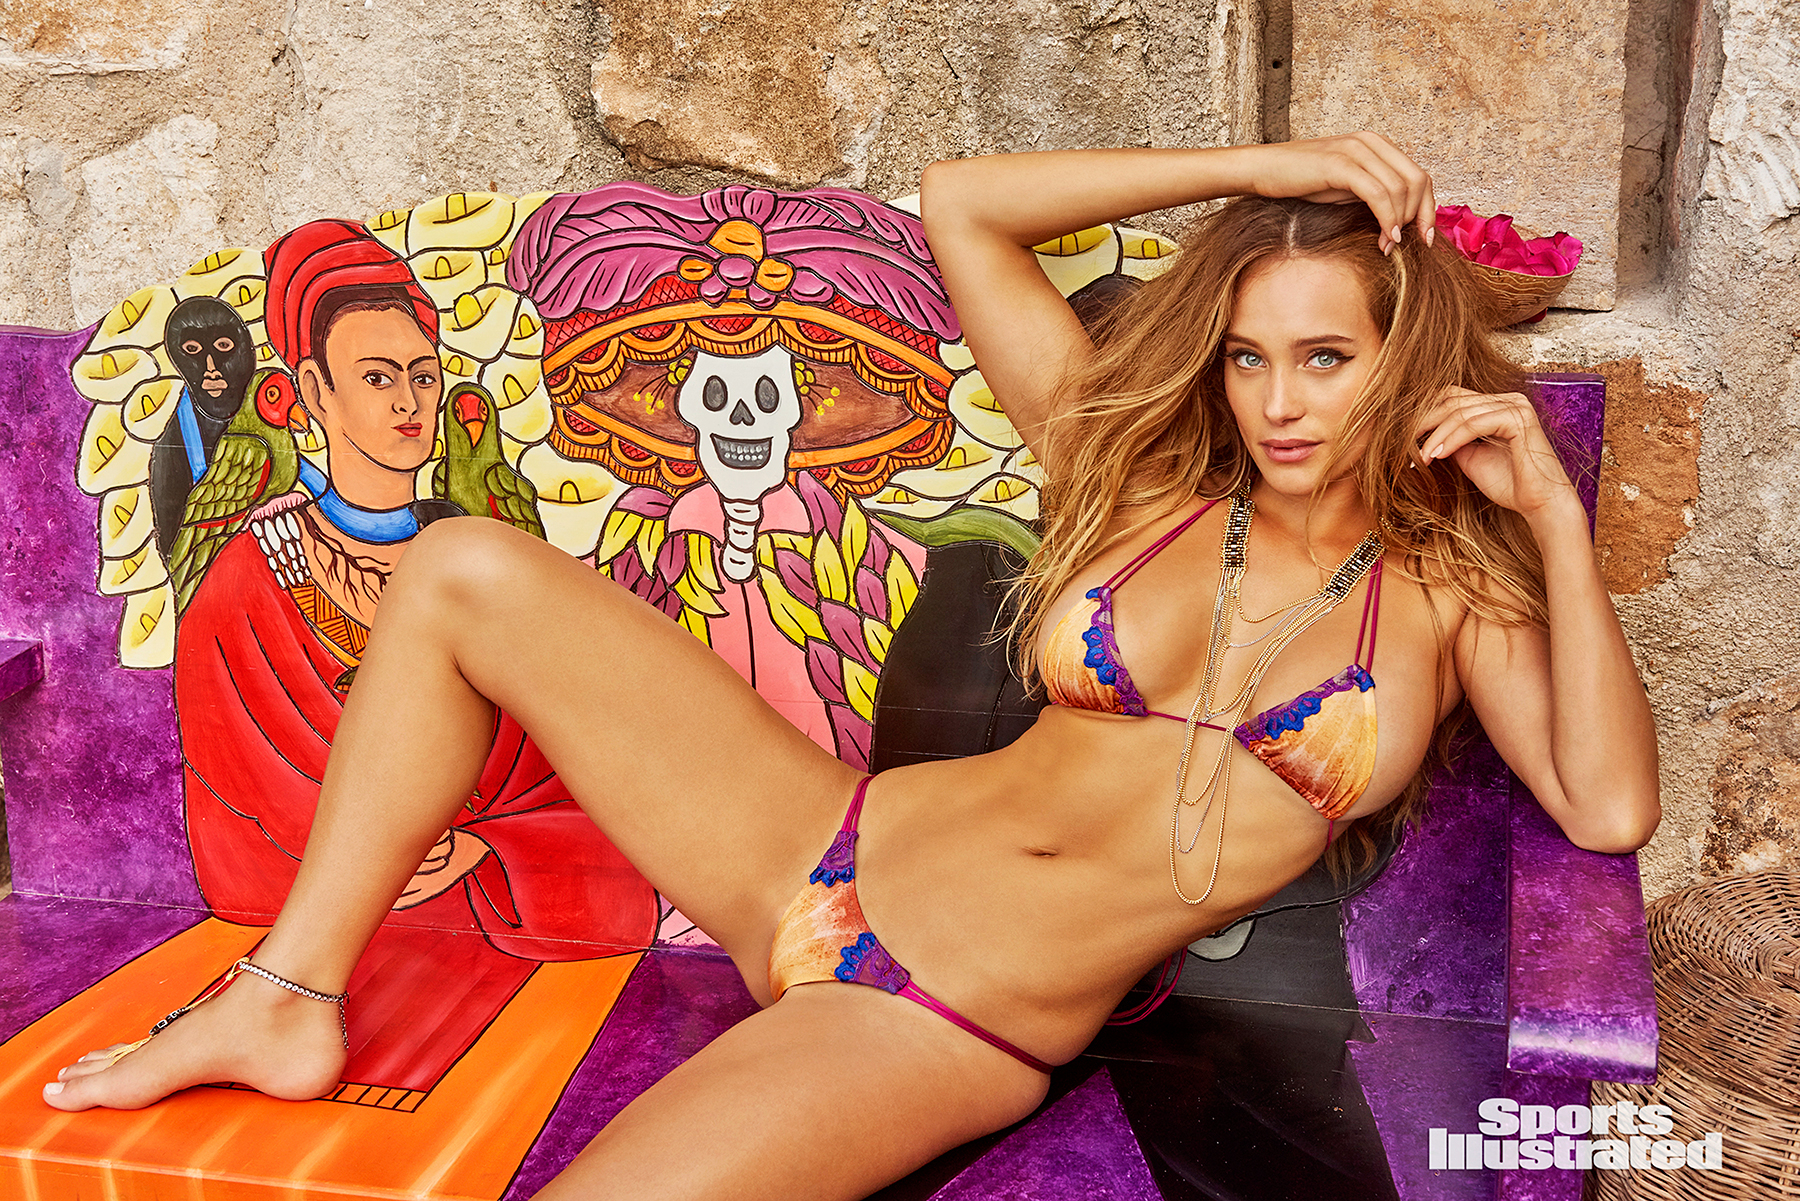 Hannah Davis poses for Sports Illustrated